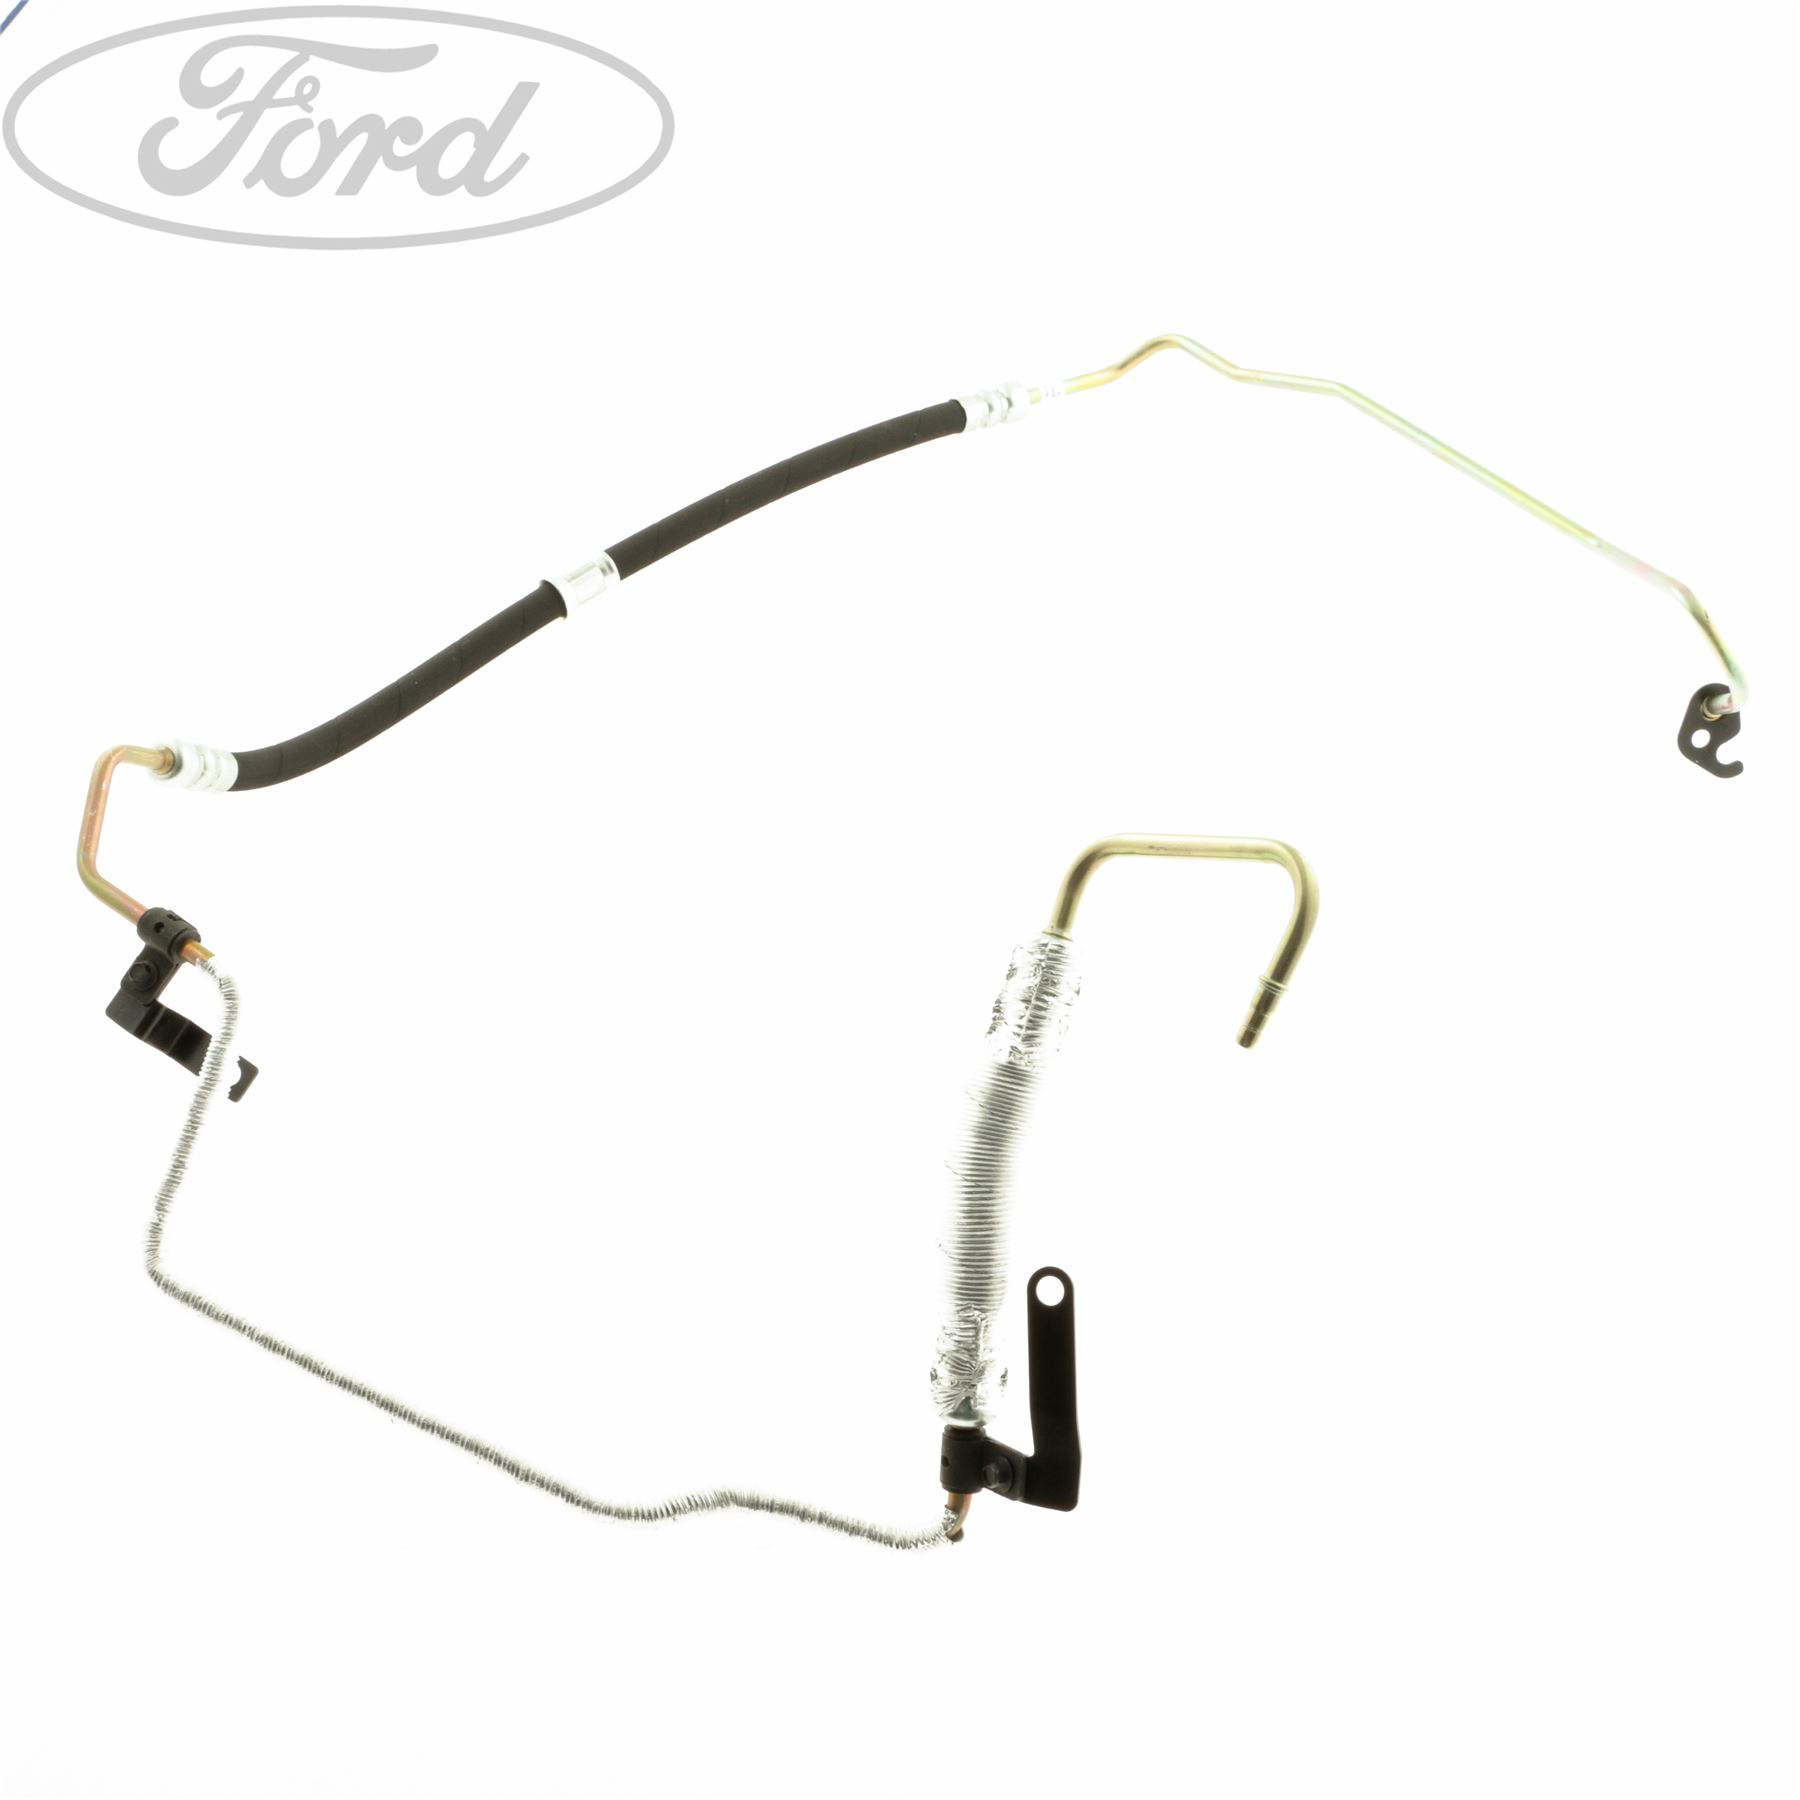 Genuine Ford Focus Mk1 Power Steering Hose